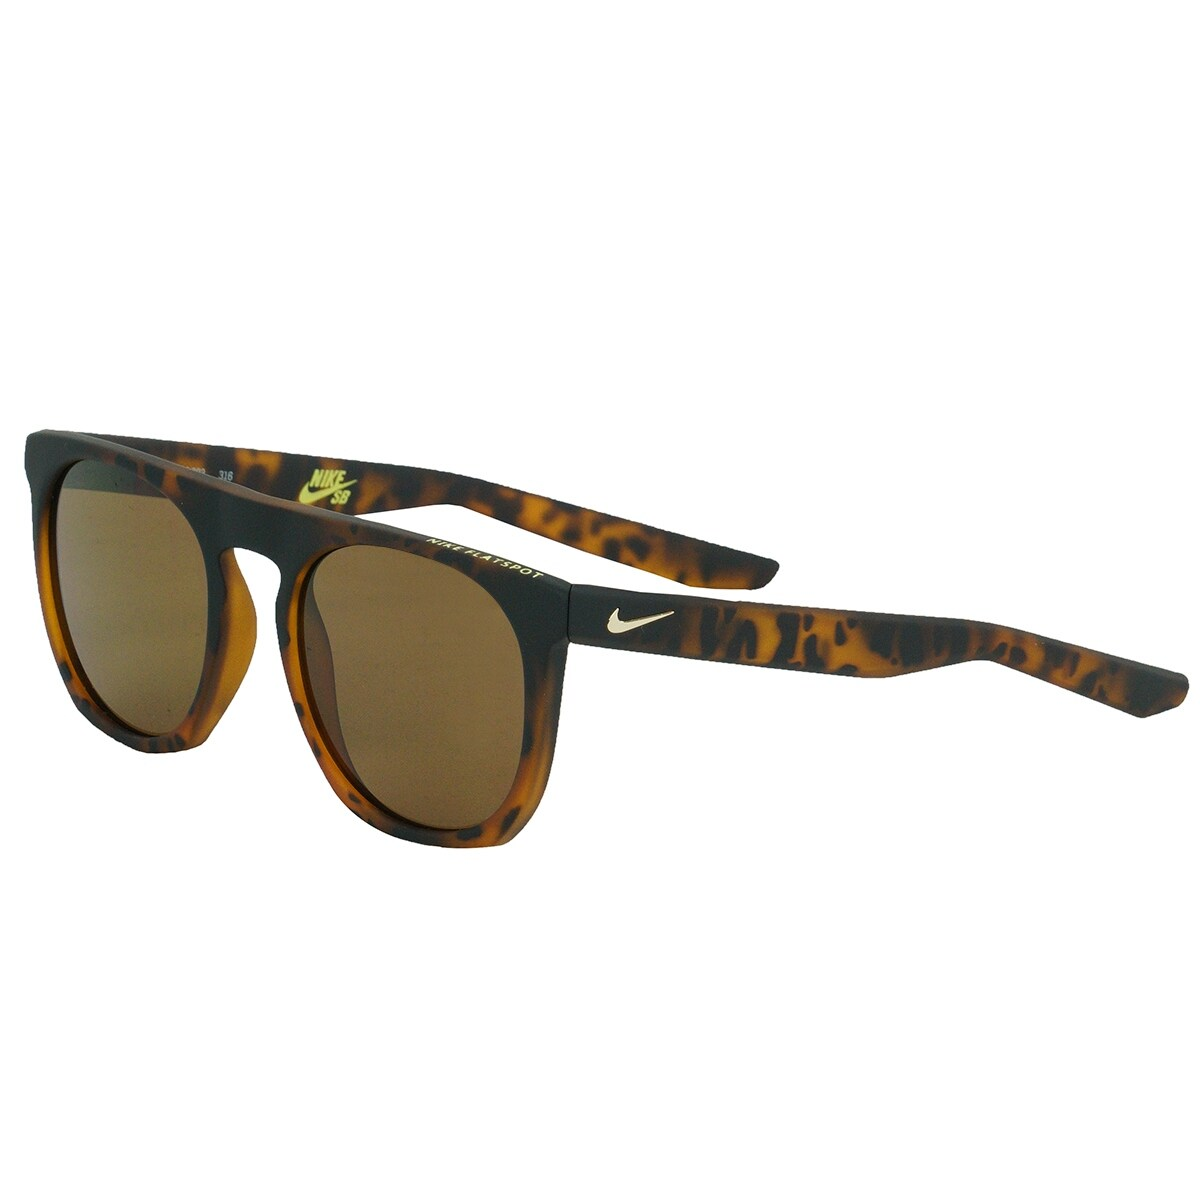 3298af4a0f Nike Sunglasses | Shop our Best Clothing & Shoes Deals Online at Overstock